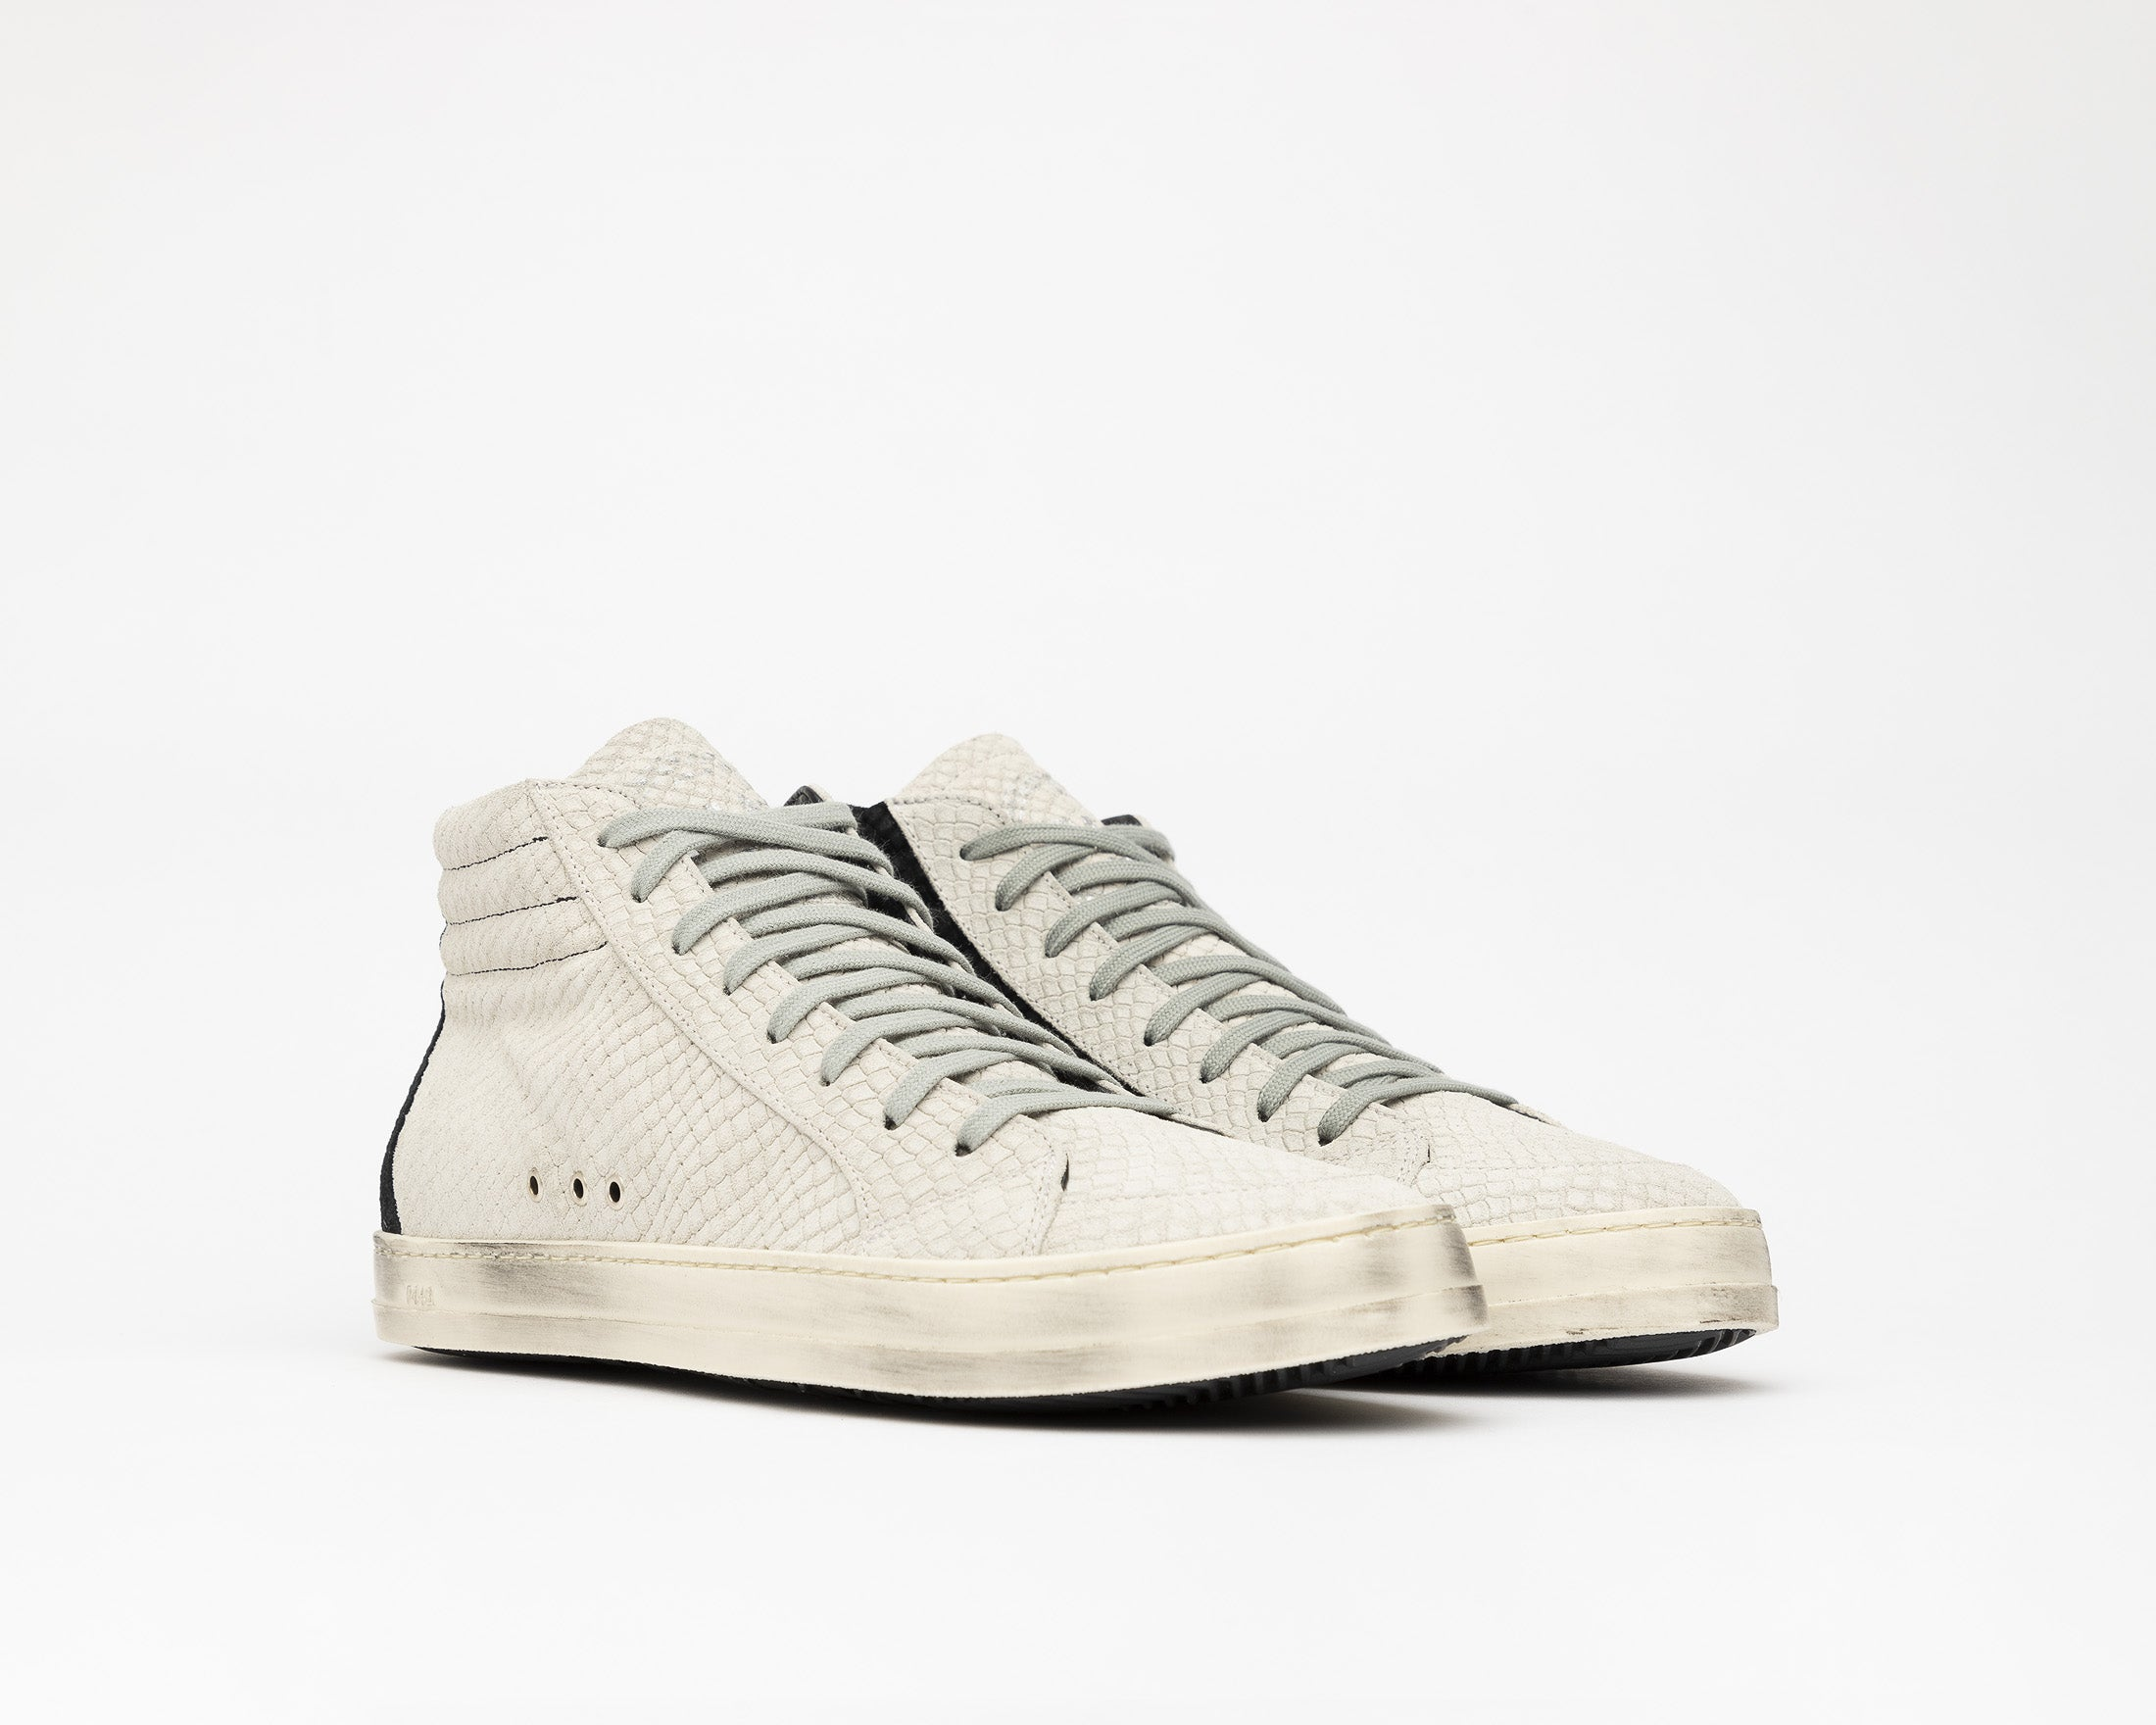 SkateBS High-Top Sneaker in MultiSnake - Side